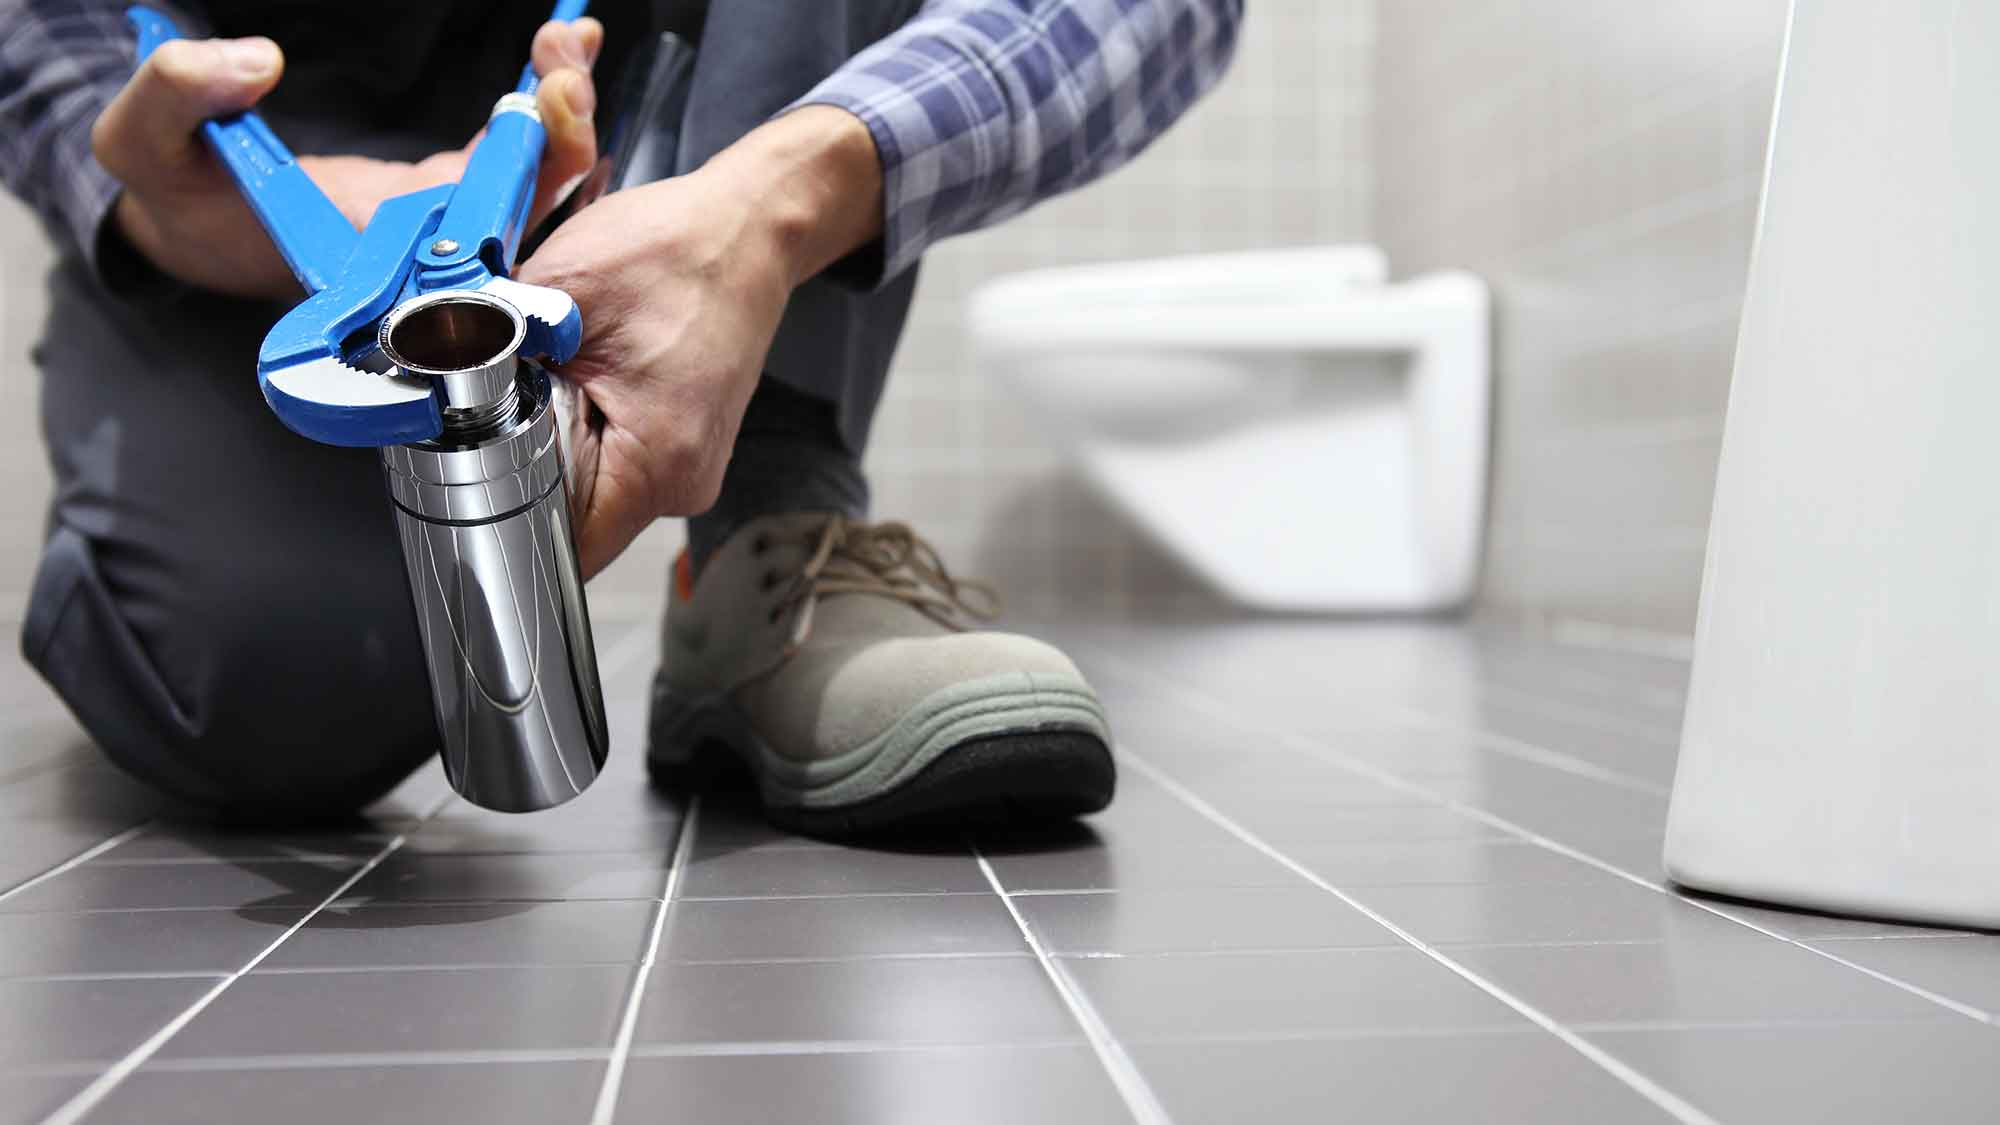 blocked toilet repair essex maintenance leigh on sea engineer